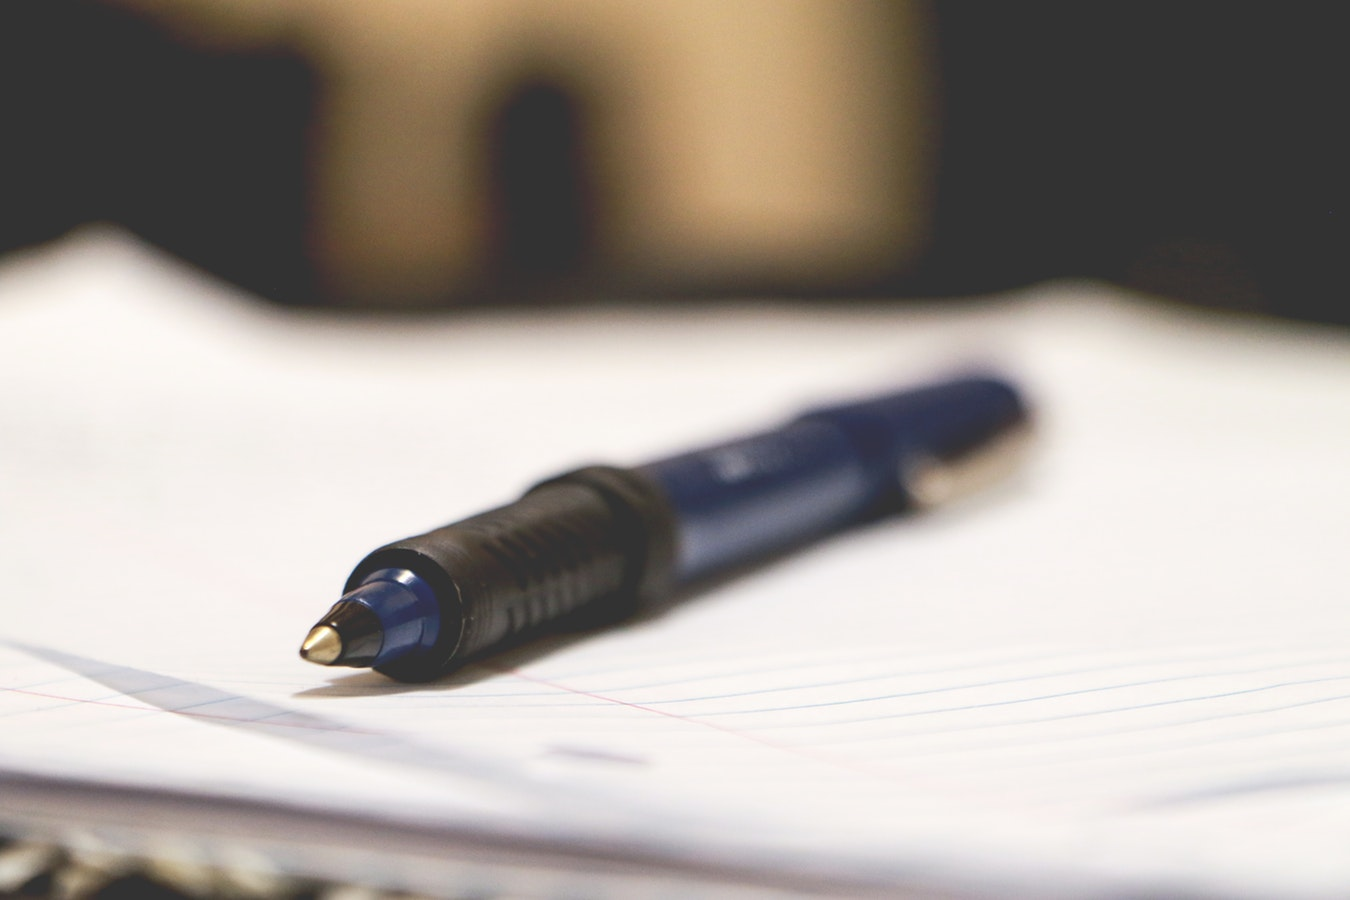 A pen laying on a piece of paper